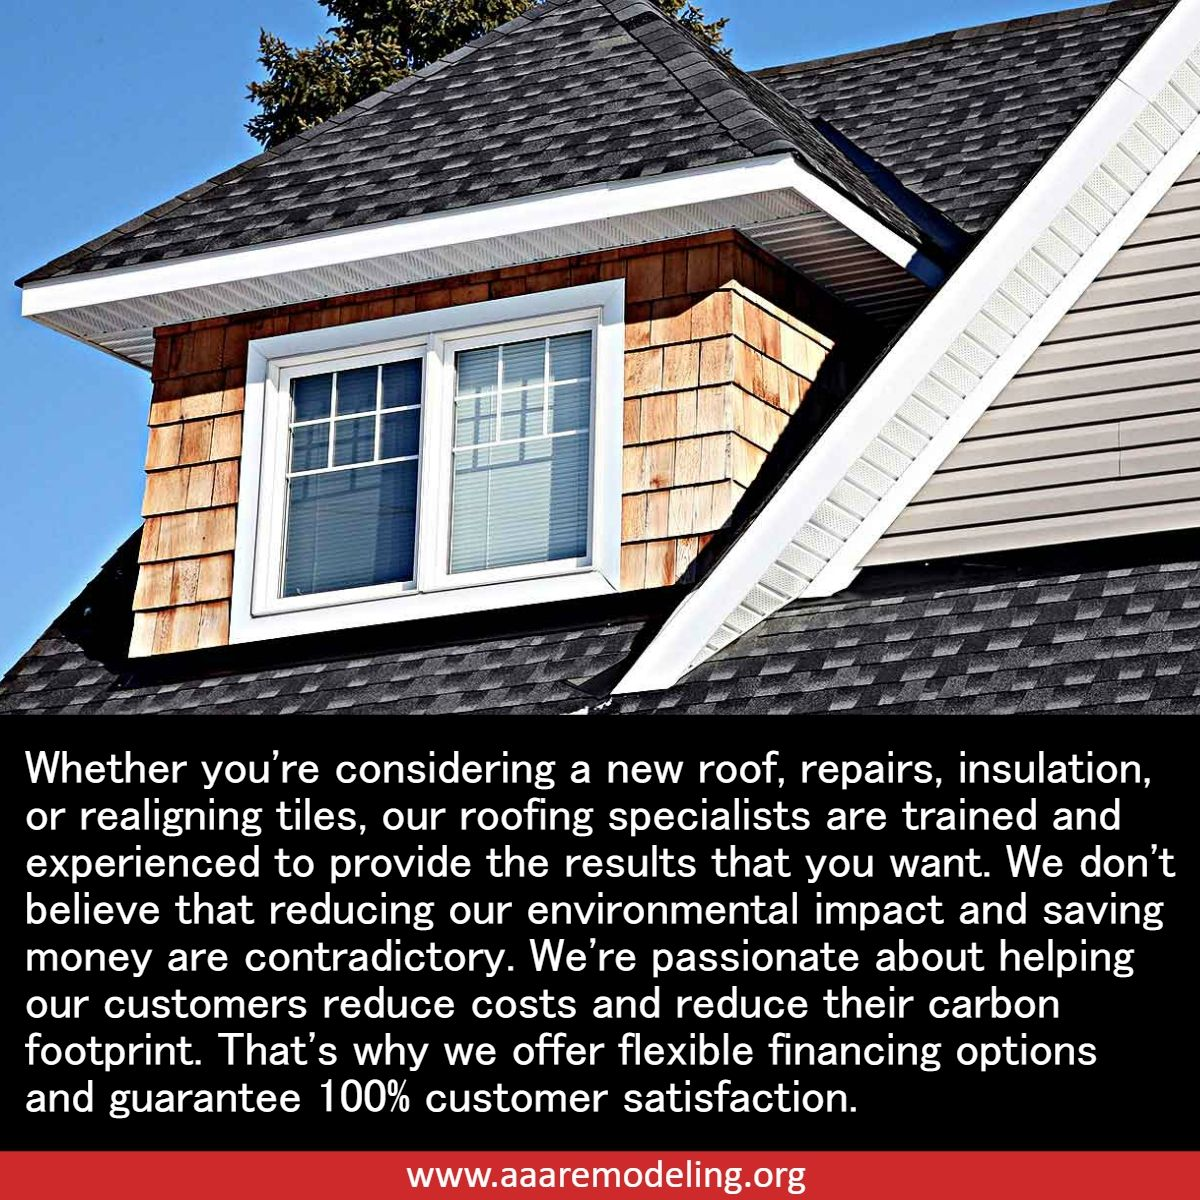 Home Remodel Roofing Specialists Roofing